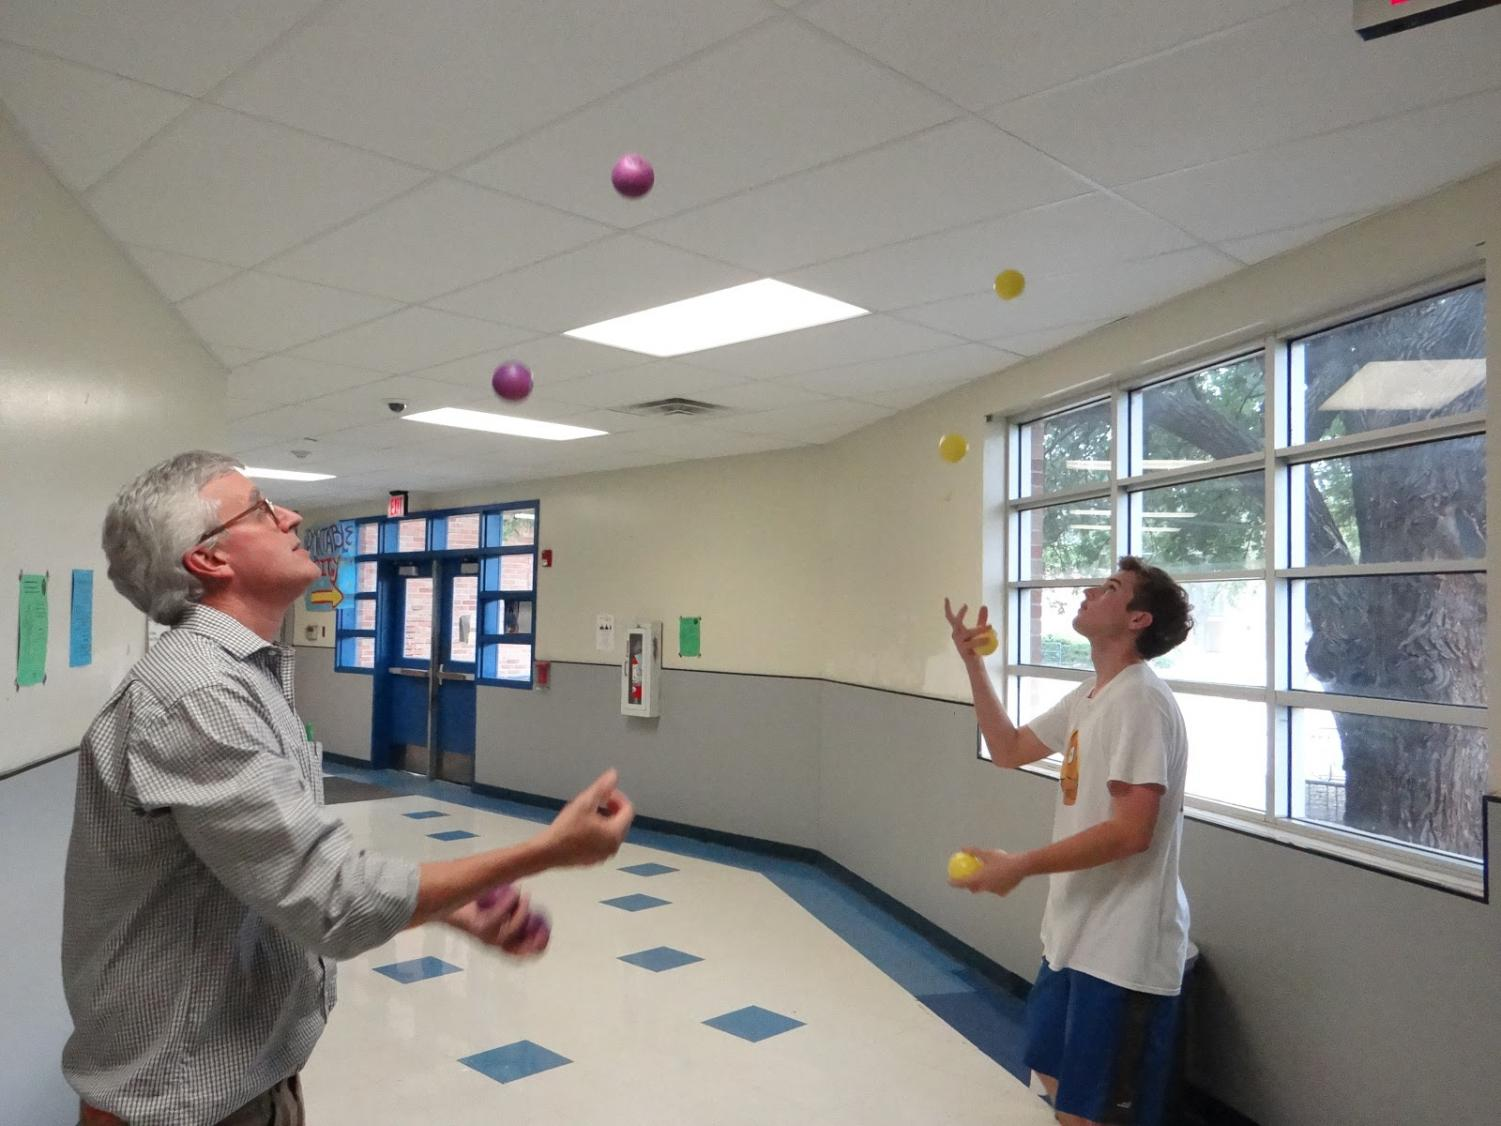 "Mr. Pass and rising senior Will Critendon each juggle five balls simultaneously. Critendon and Pass practice their skills out in the math hall as a part of Juggling Club, a weekly club held on Thursdays helping kids learn how and improve their juggling skills. ""I've been juggling for a couple years now,"" Critendon said. ""The biggest piece of advice I can give to beginners is just to keep practicing even when it gets frustrating."" Photo by Tomas Marrero."